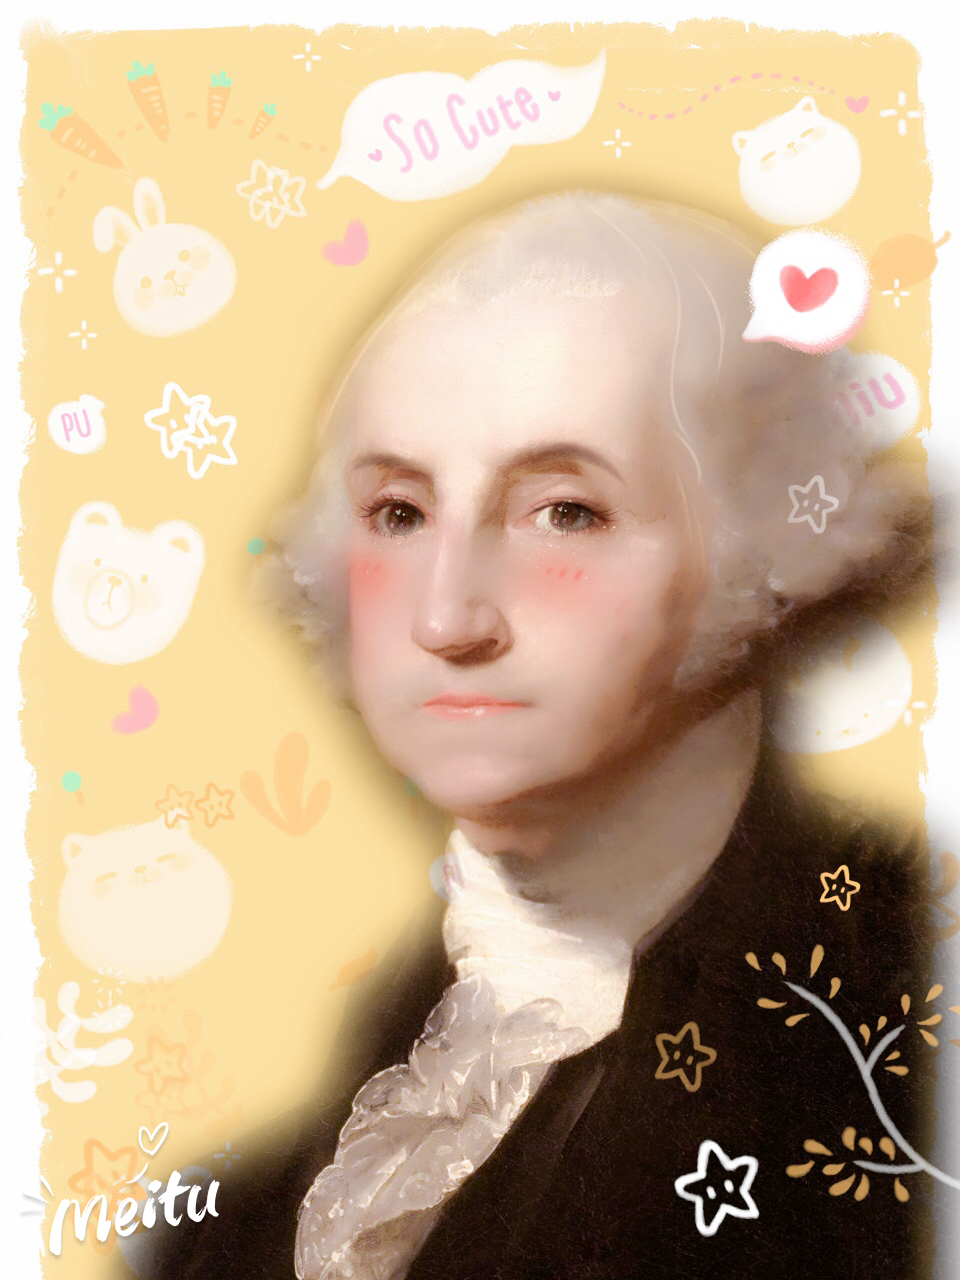 George Washington, 1st President